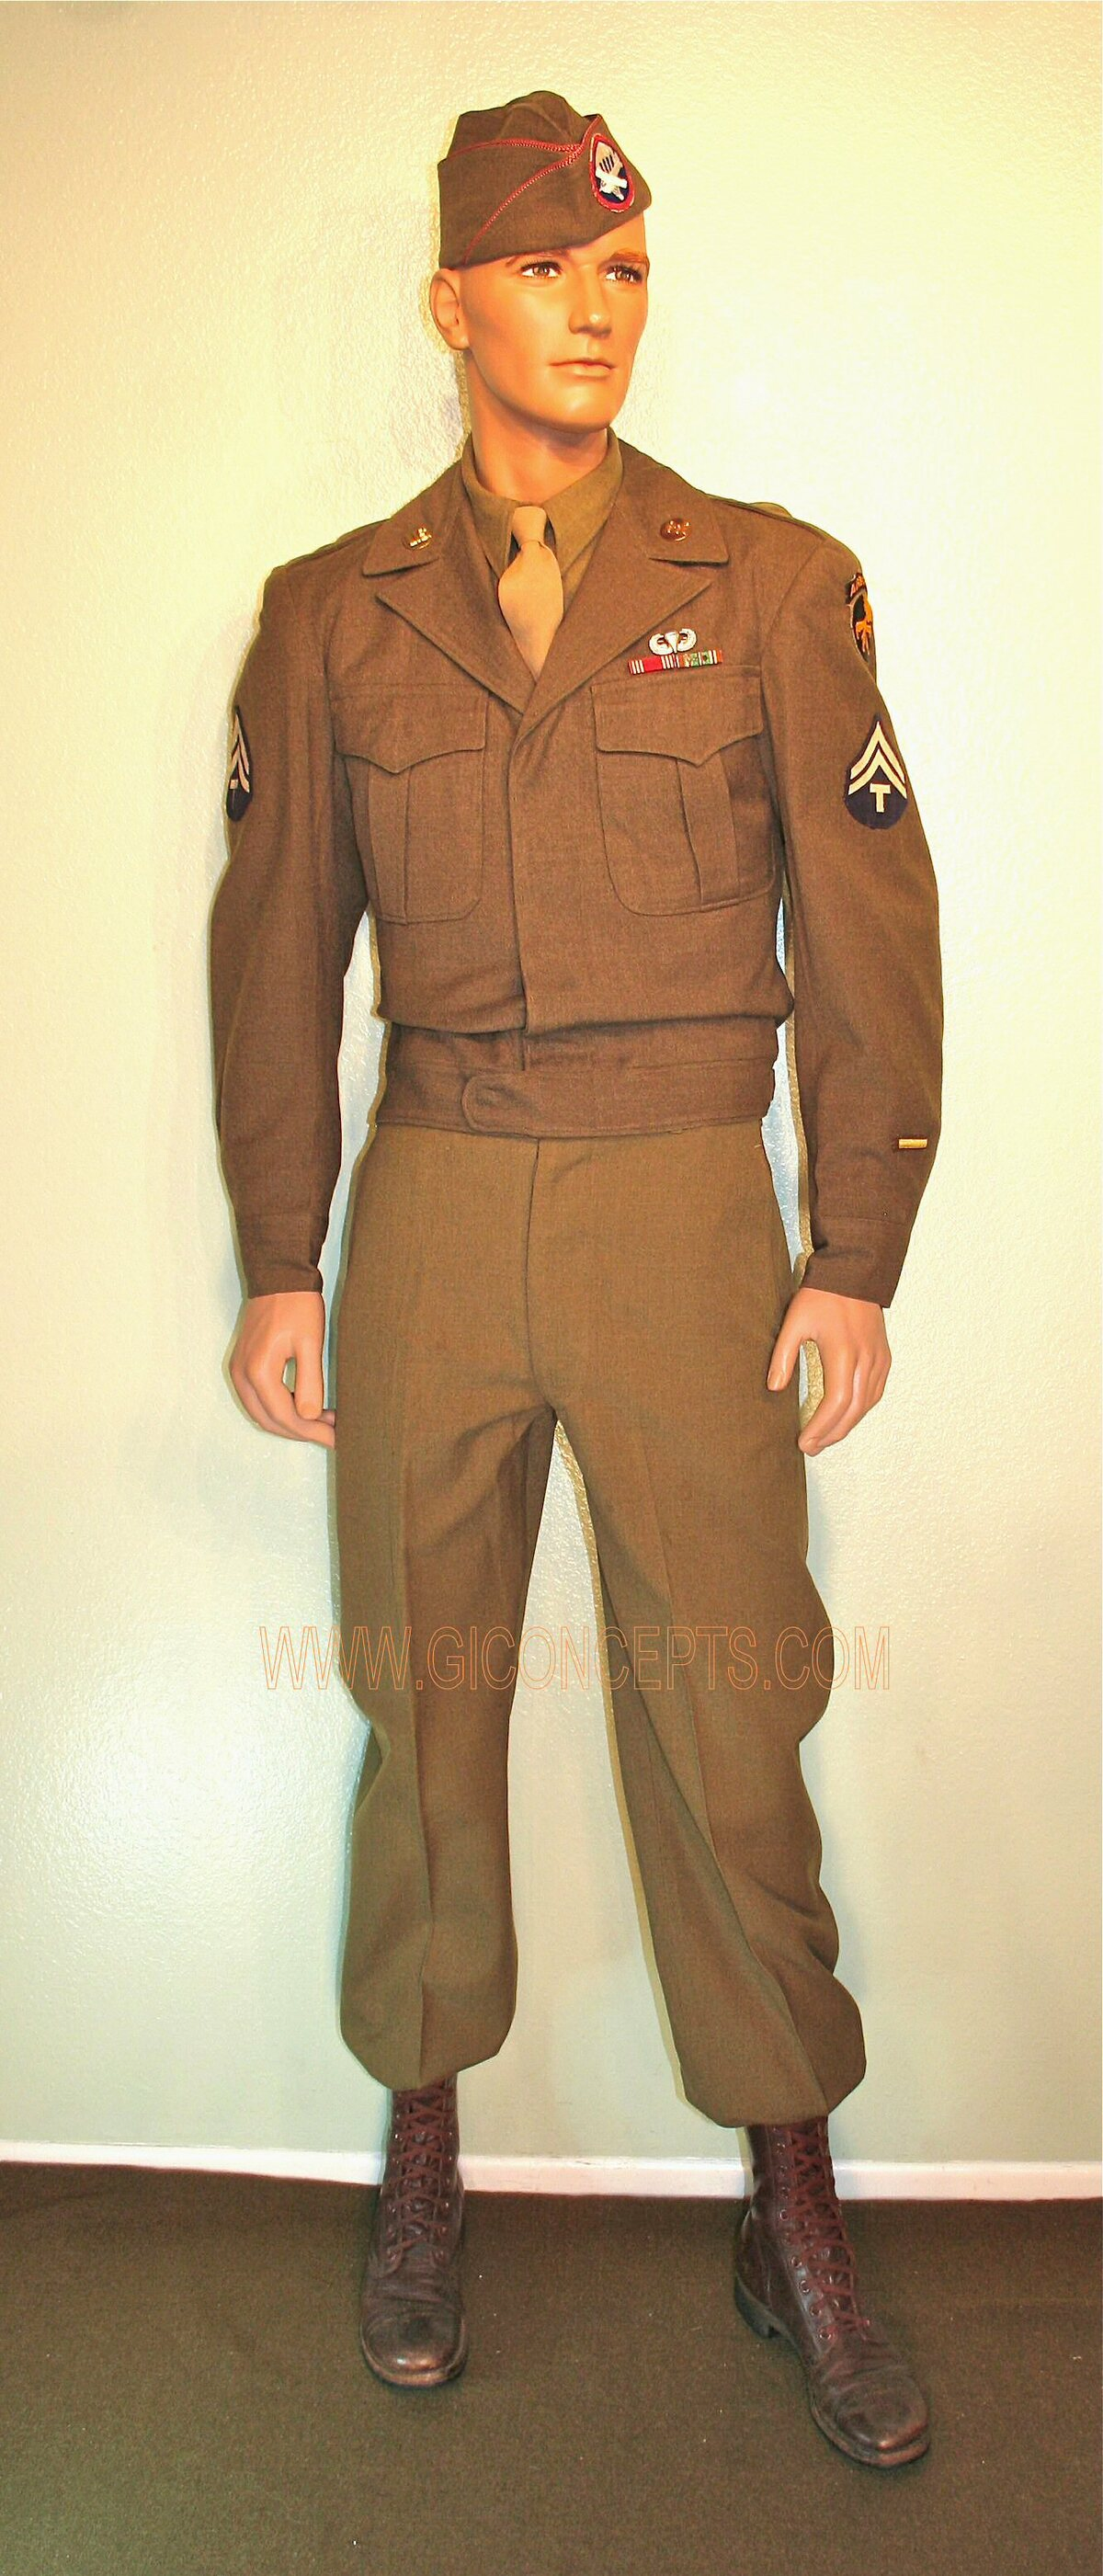 139th Airborne Engineer Battalion 17th Airborne Division Class A uniform 1945